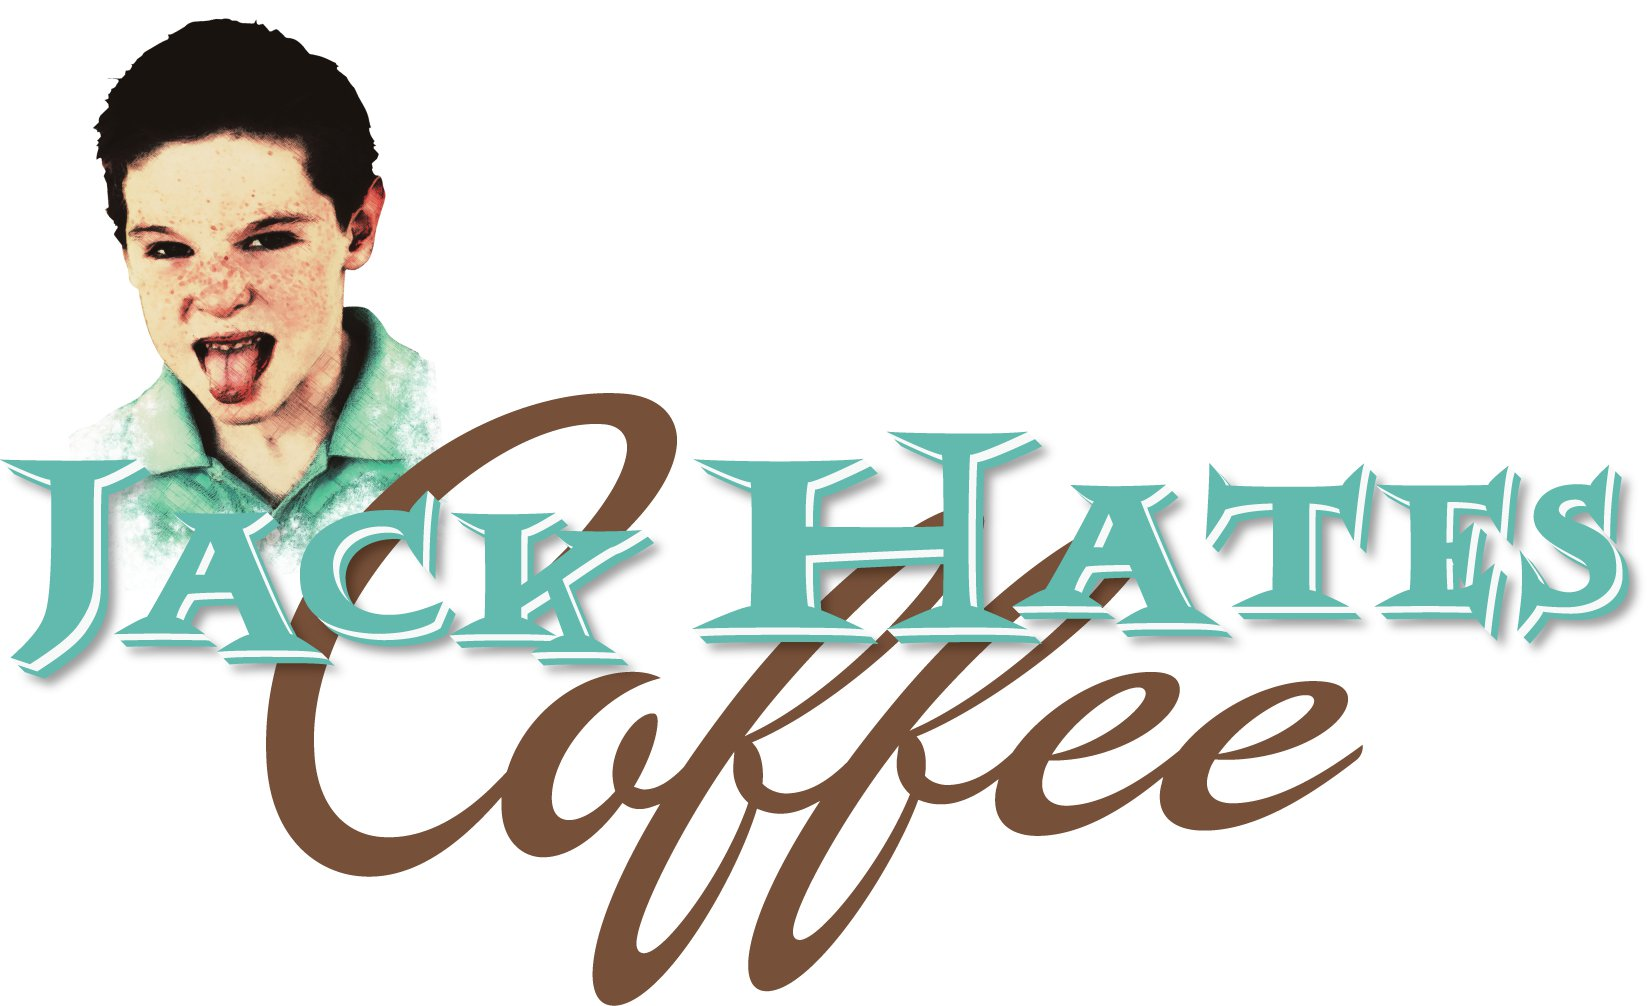 Jack Hates Coffee logo